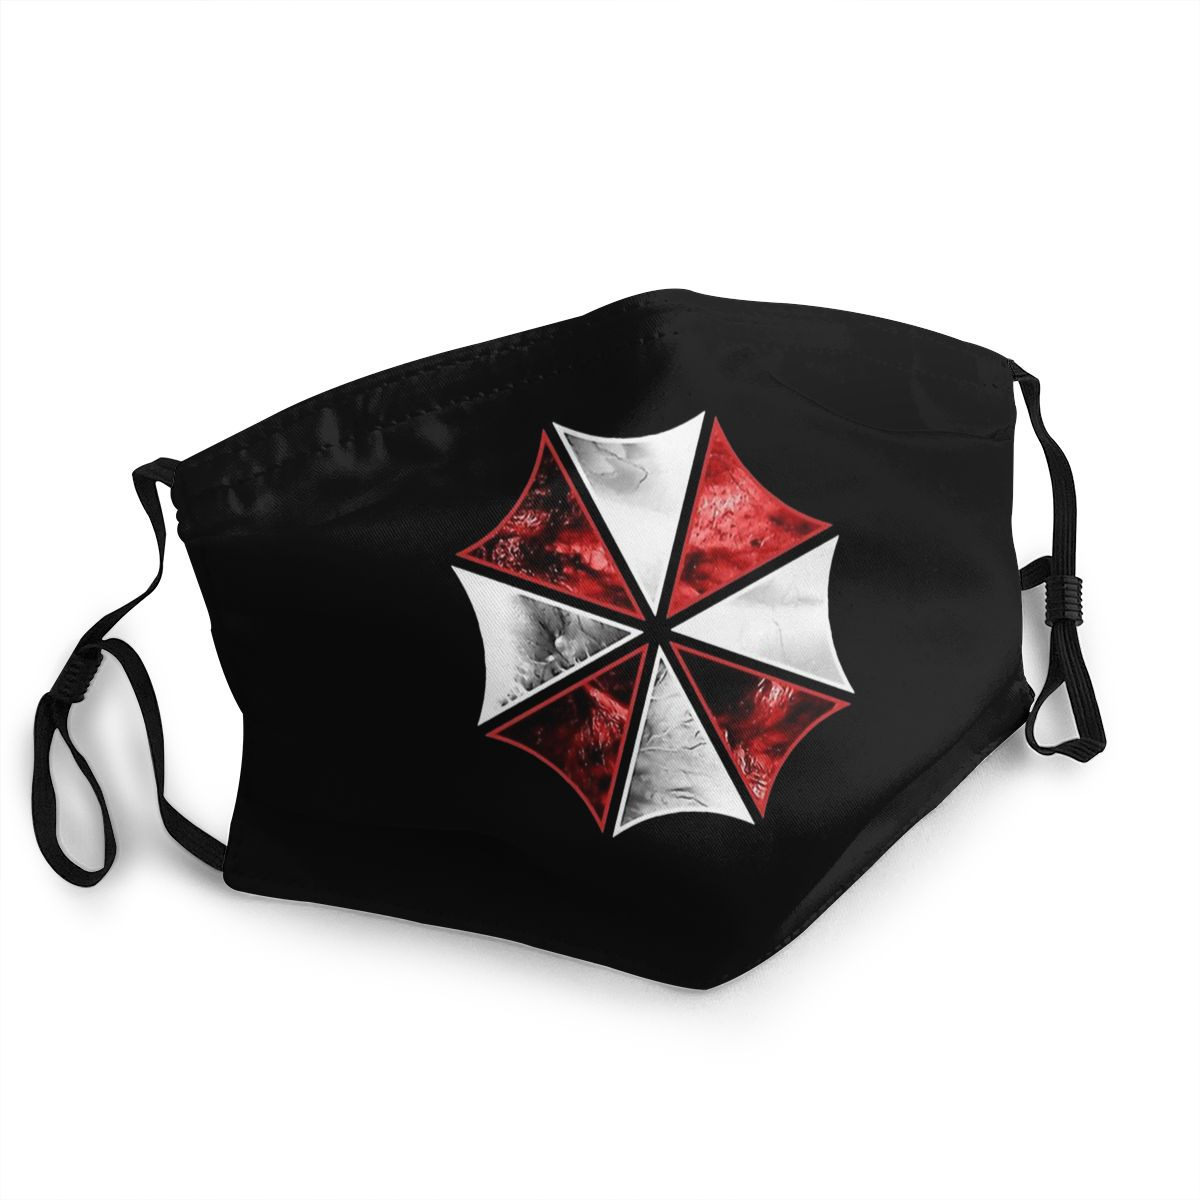 Fashion Face Mask Umbrella Corporation Unisex Winter Warm Mouth Mask Anti Dust Residented Evil Facial Protective